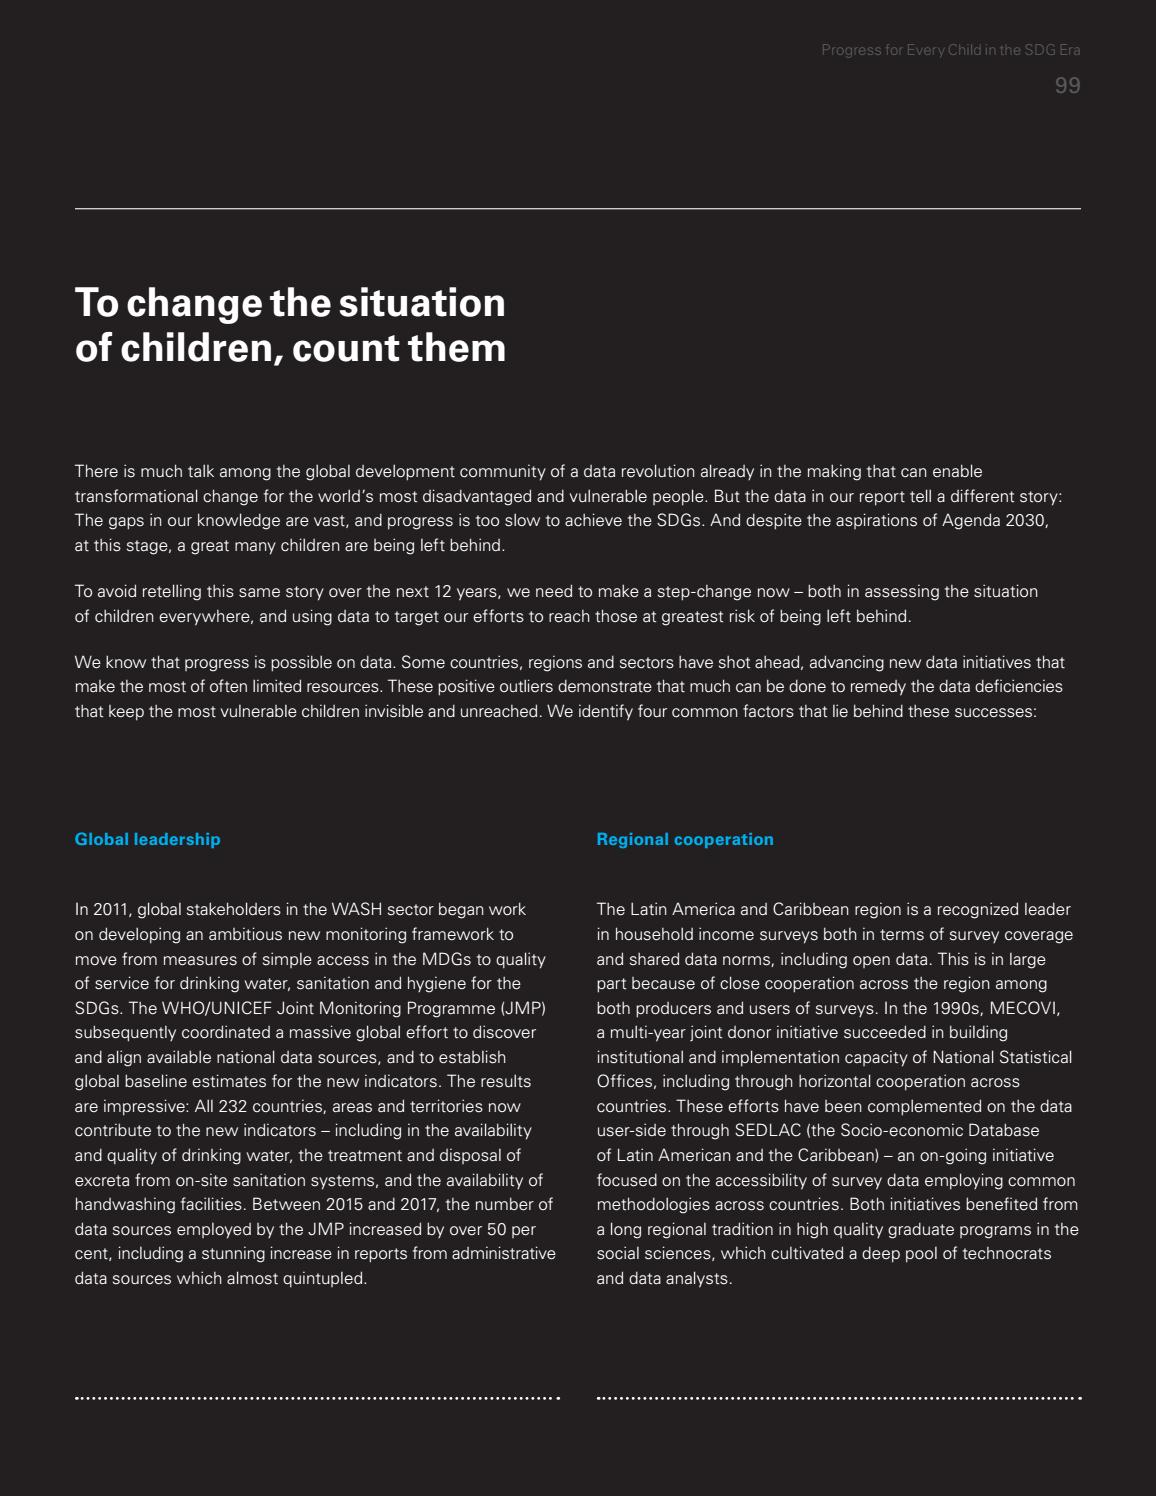 UNICEF Report Progress For Every Child In The SDG Era By USA